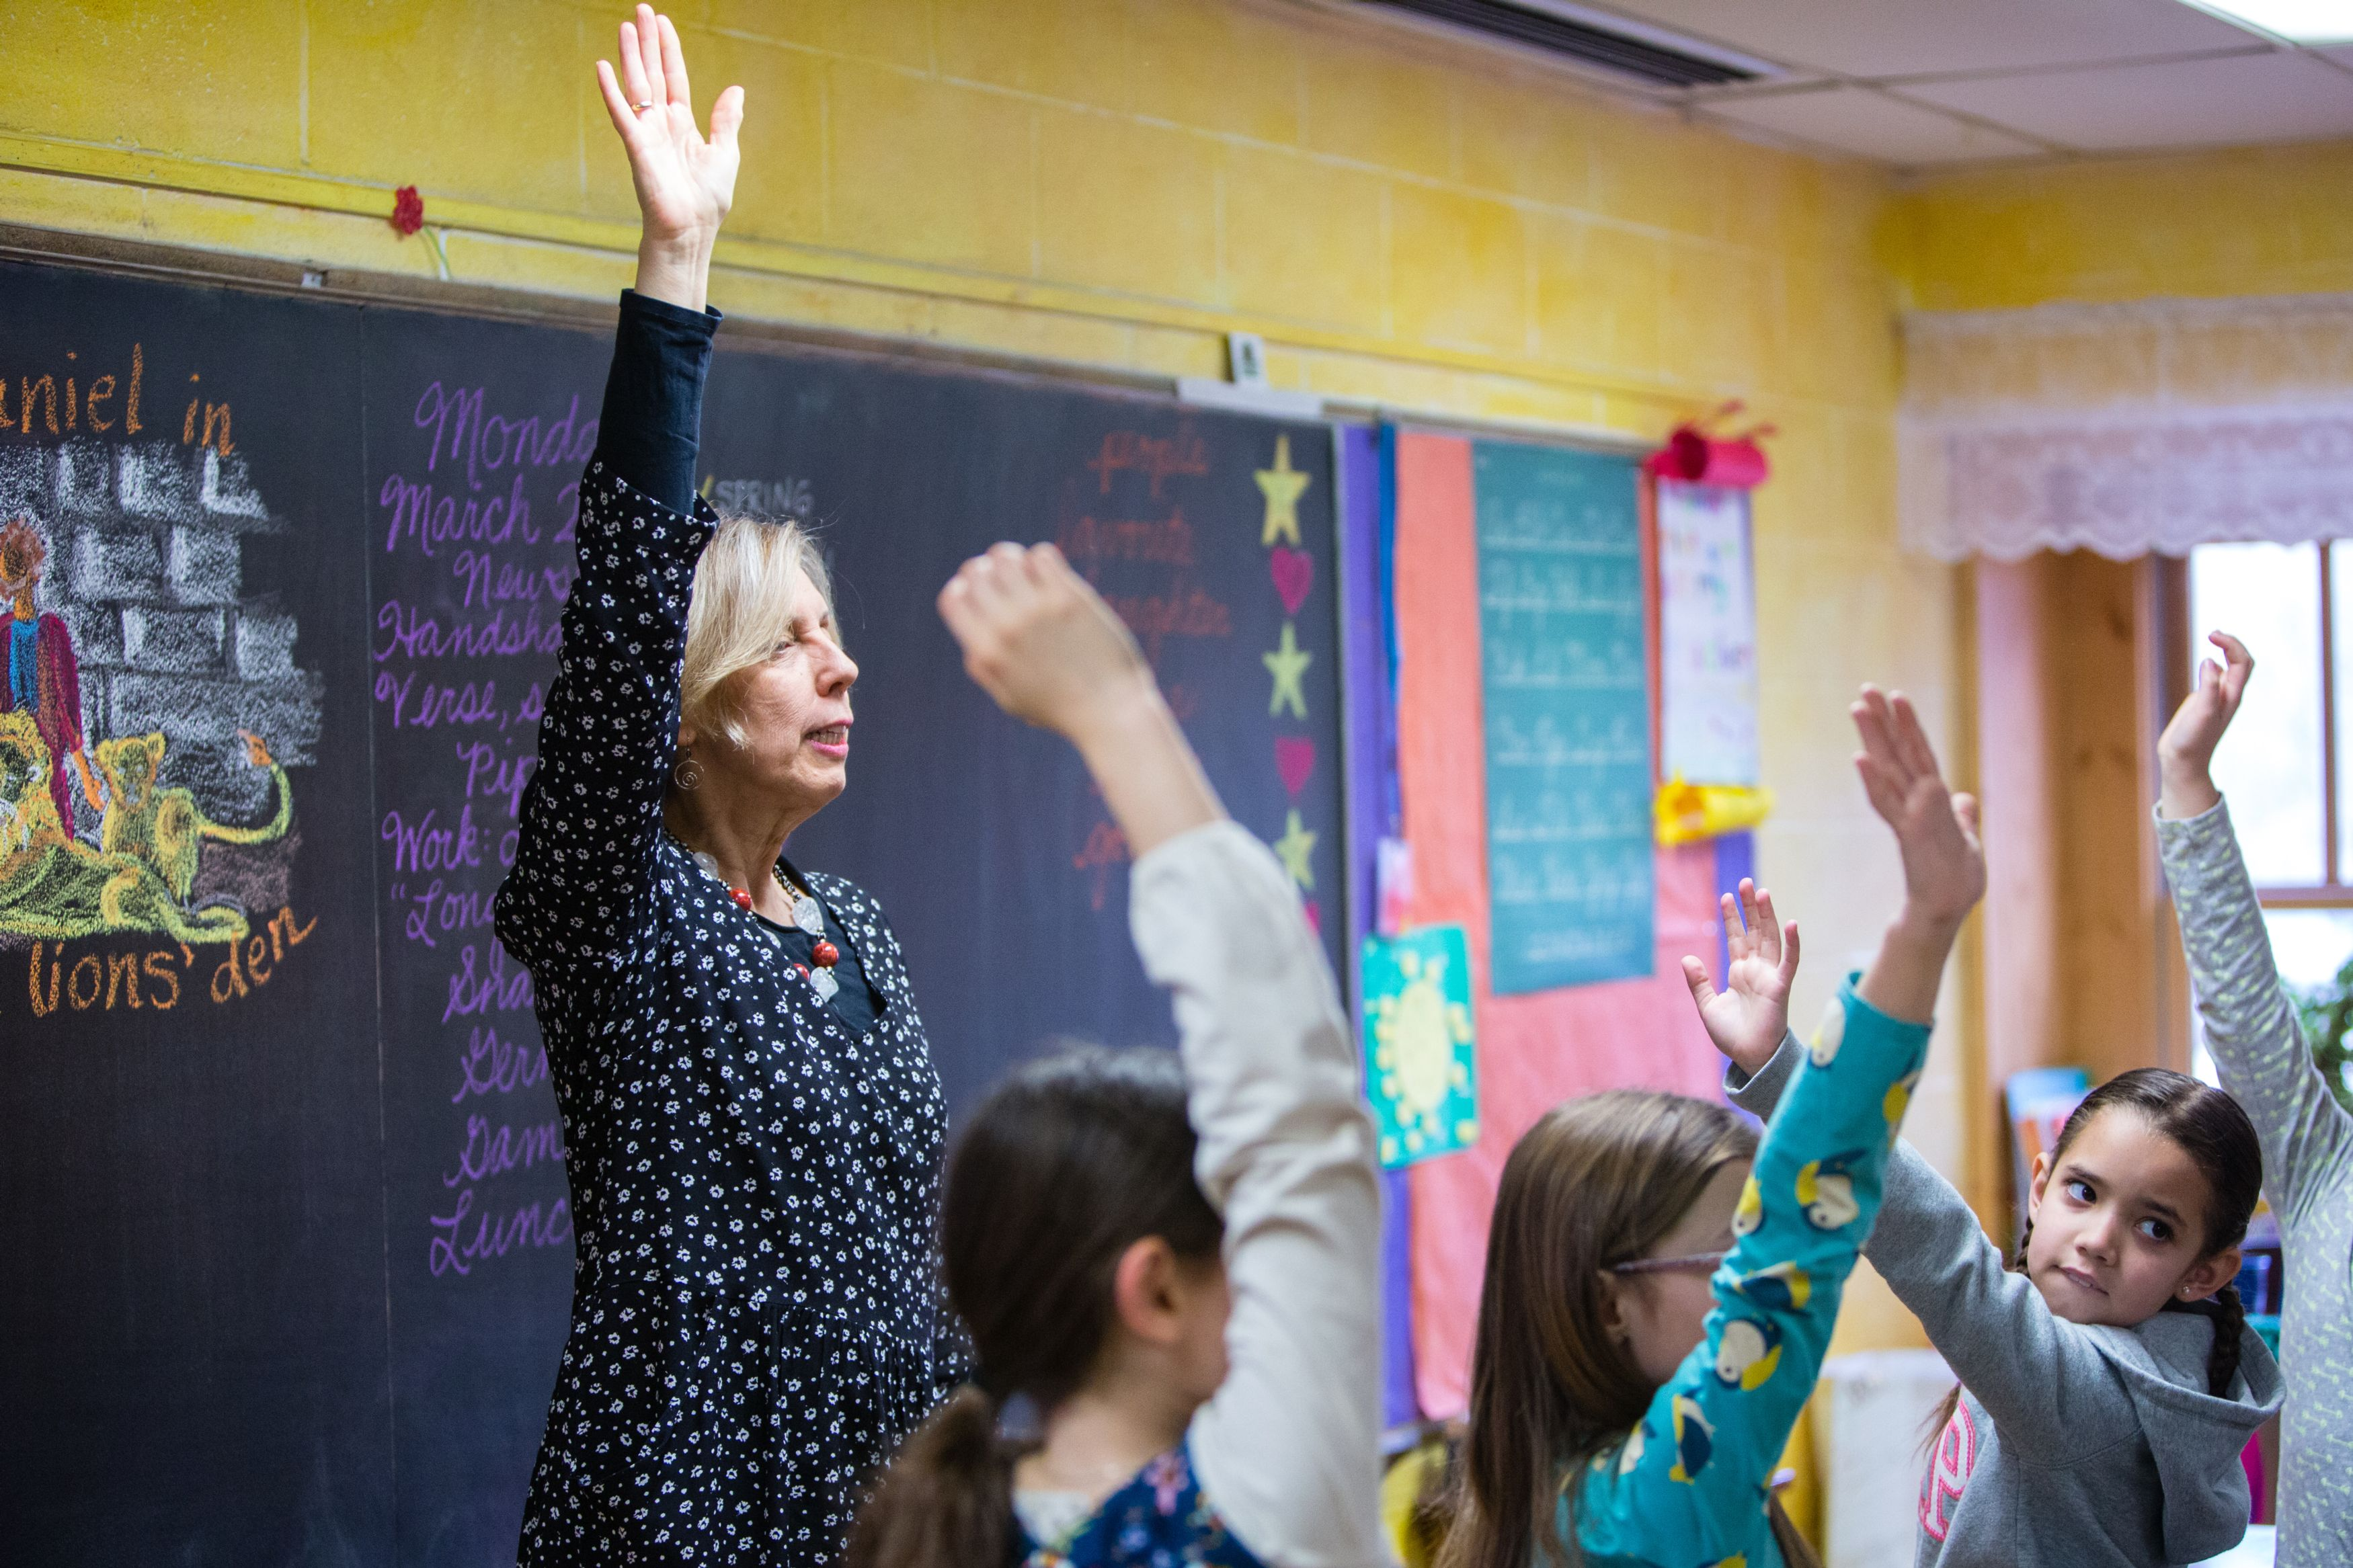 Teacher and students raising hands at front of classroom